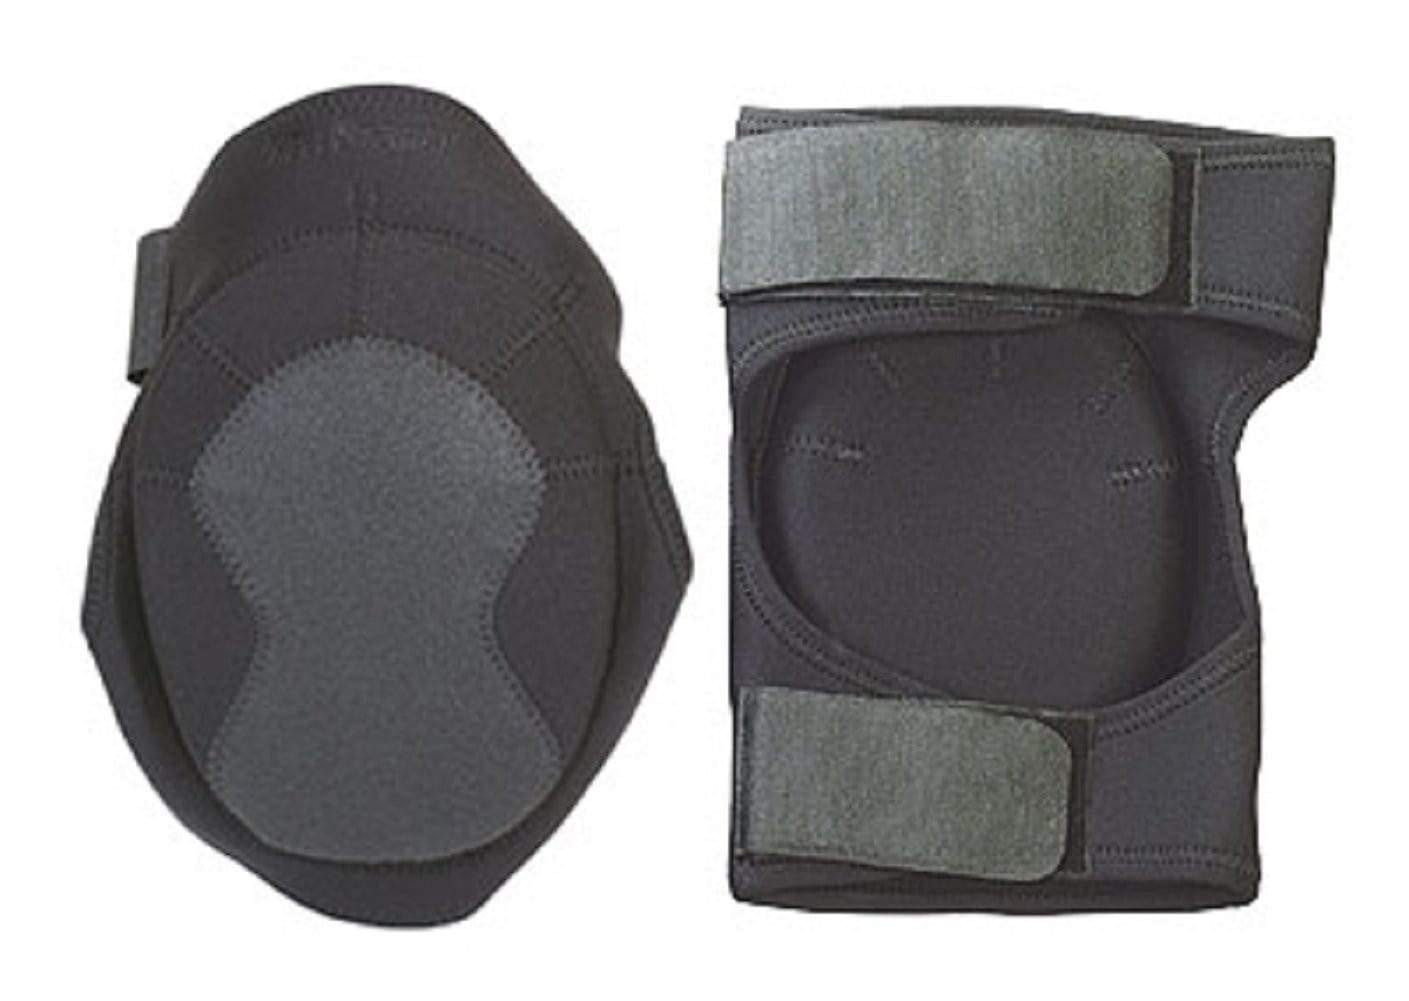 Blackhawk Neoprene Knee Pads Black - CHK-SHIELD | Outdoor Army - Tactical Gear Shop